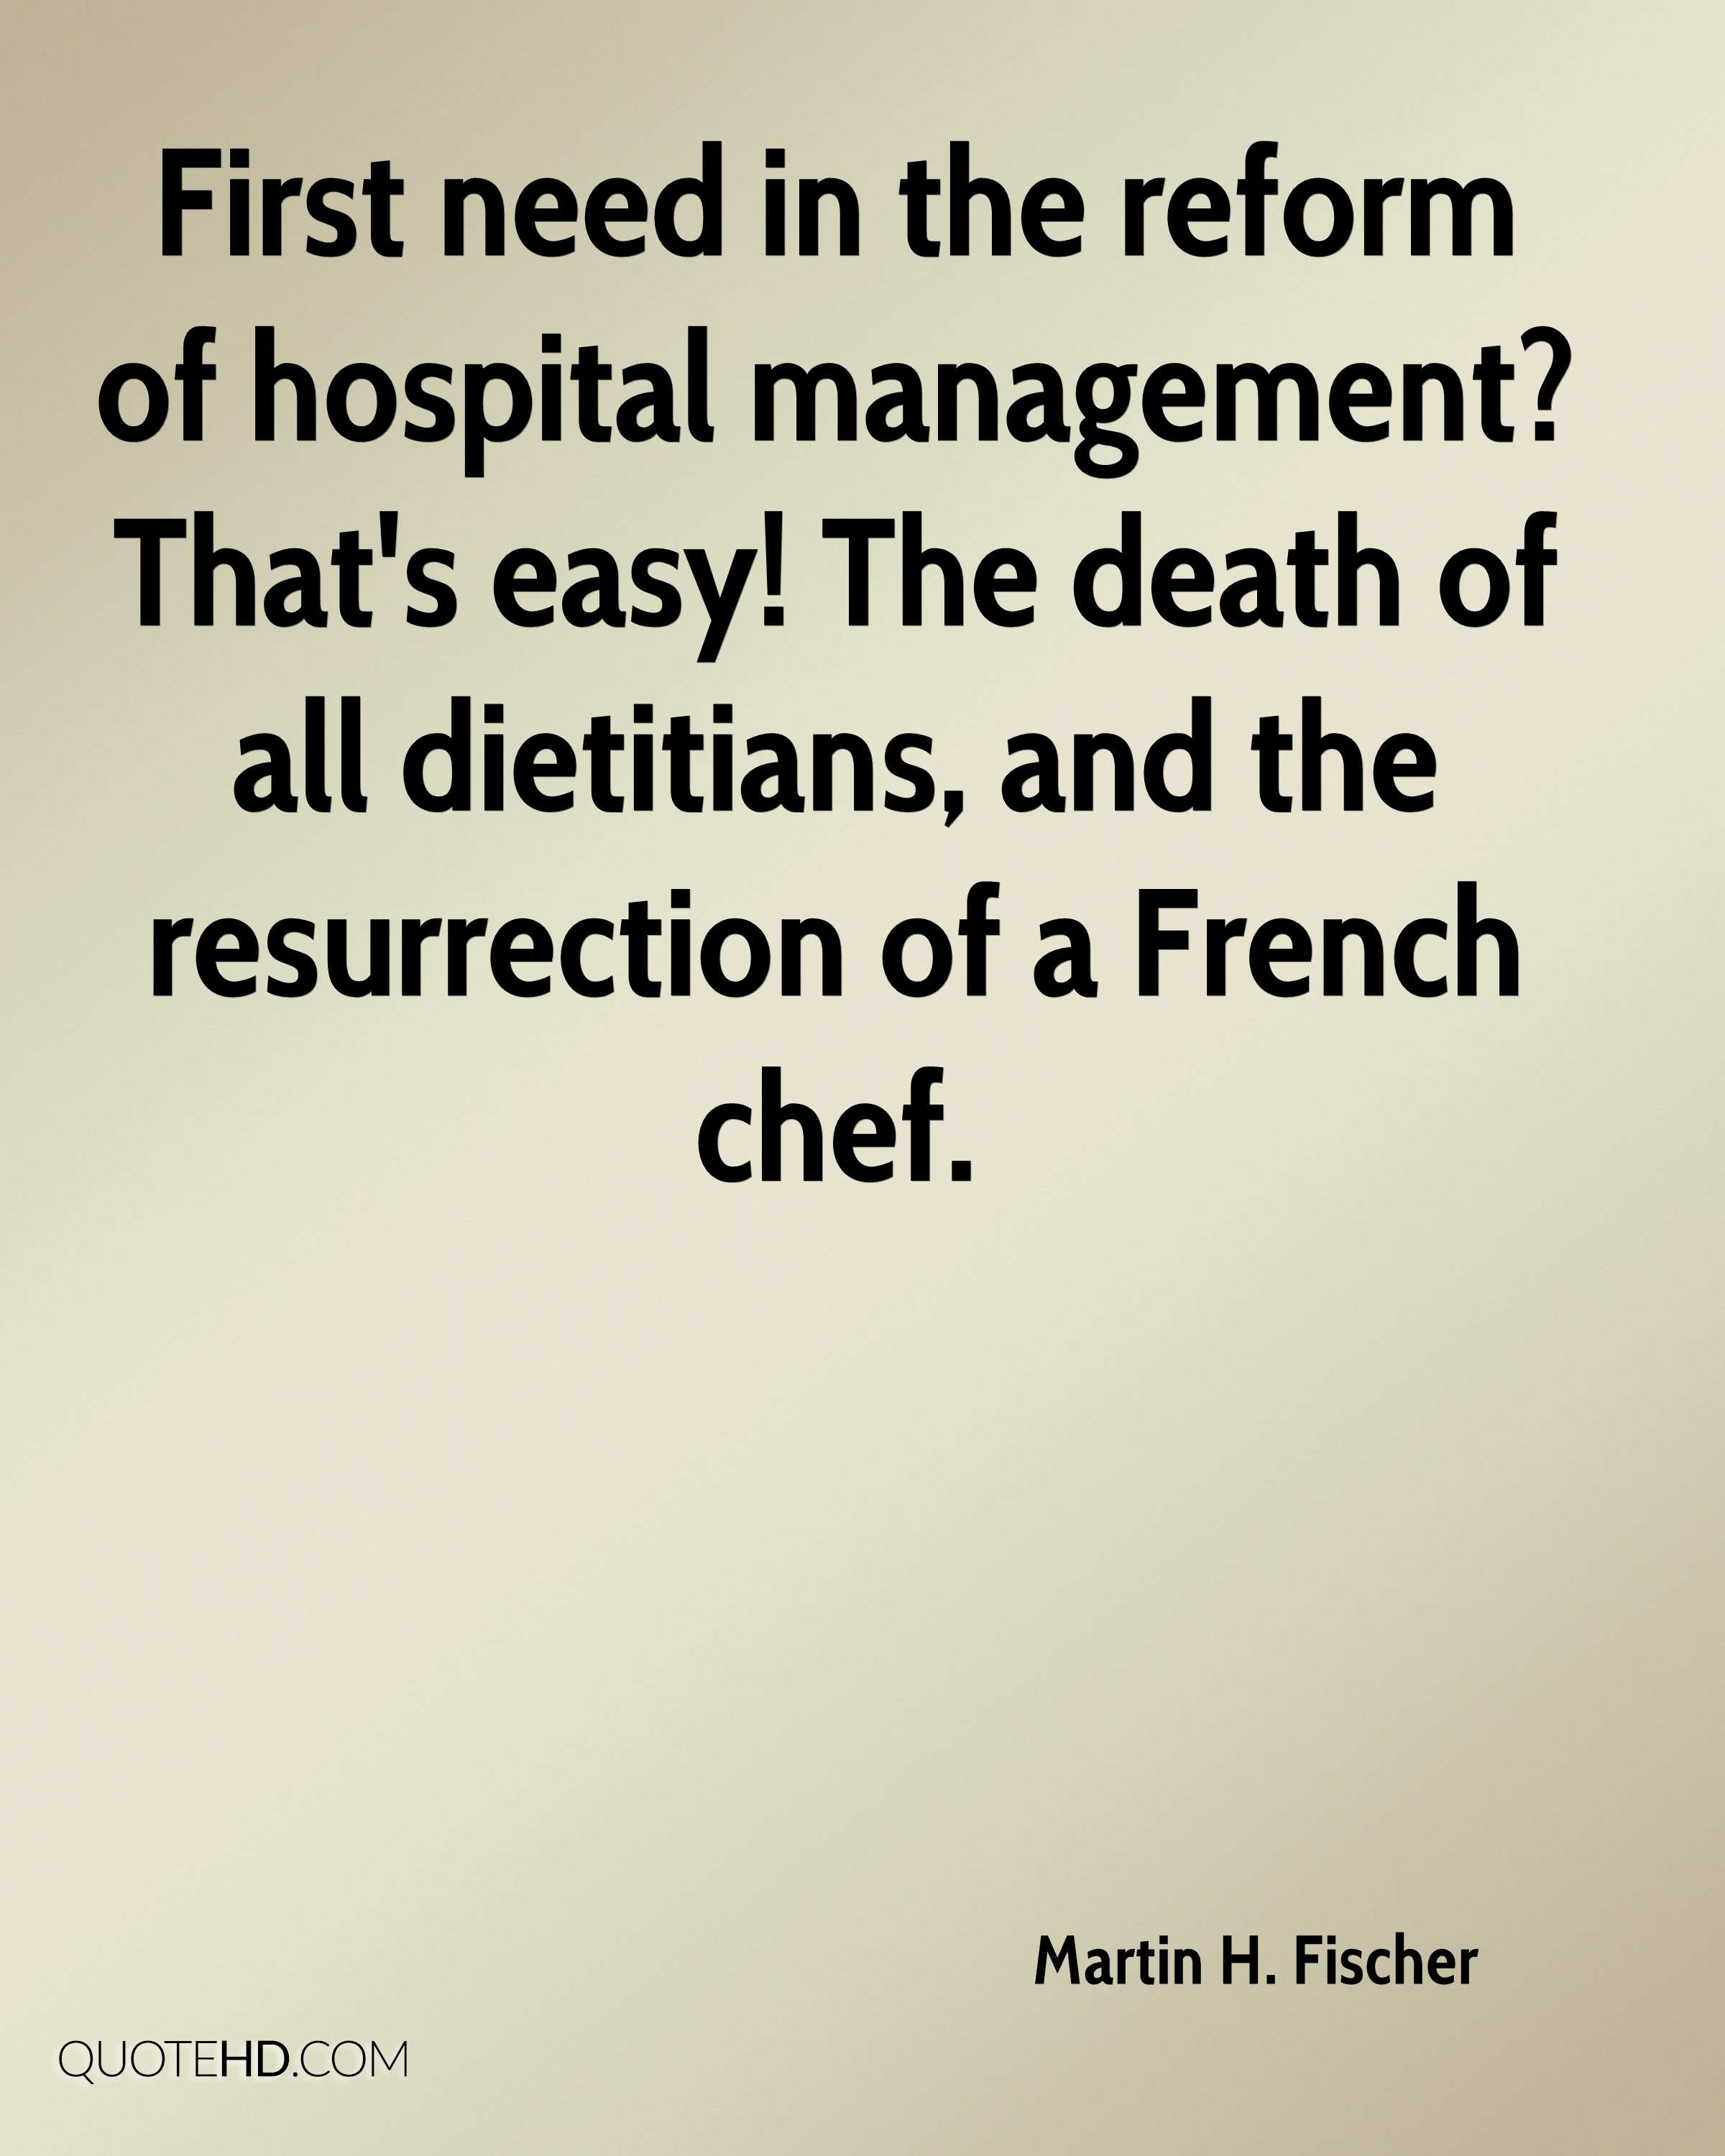 First need in the reform of hospital management? That's easy! The death of all dietitians, and the resurrection of a French chef.